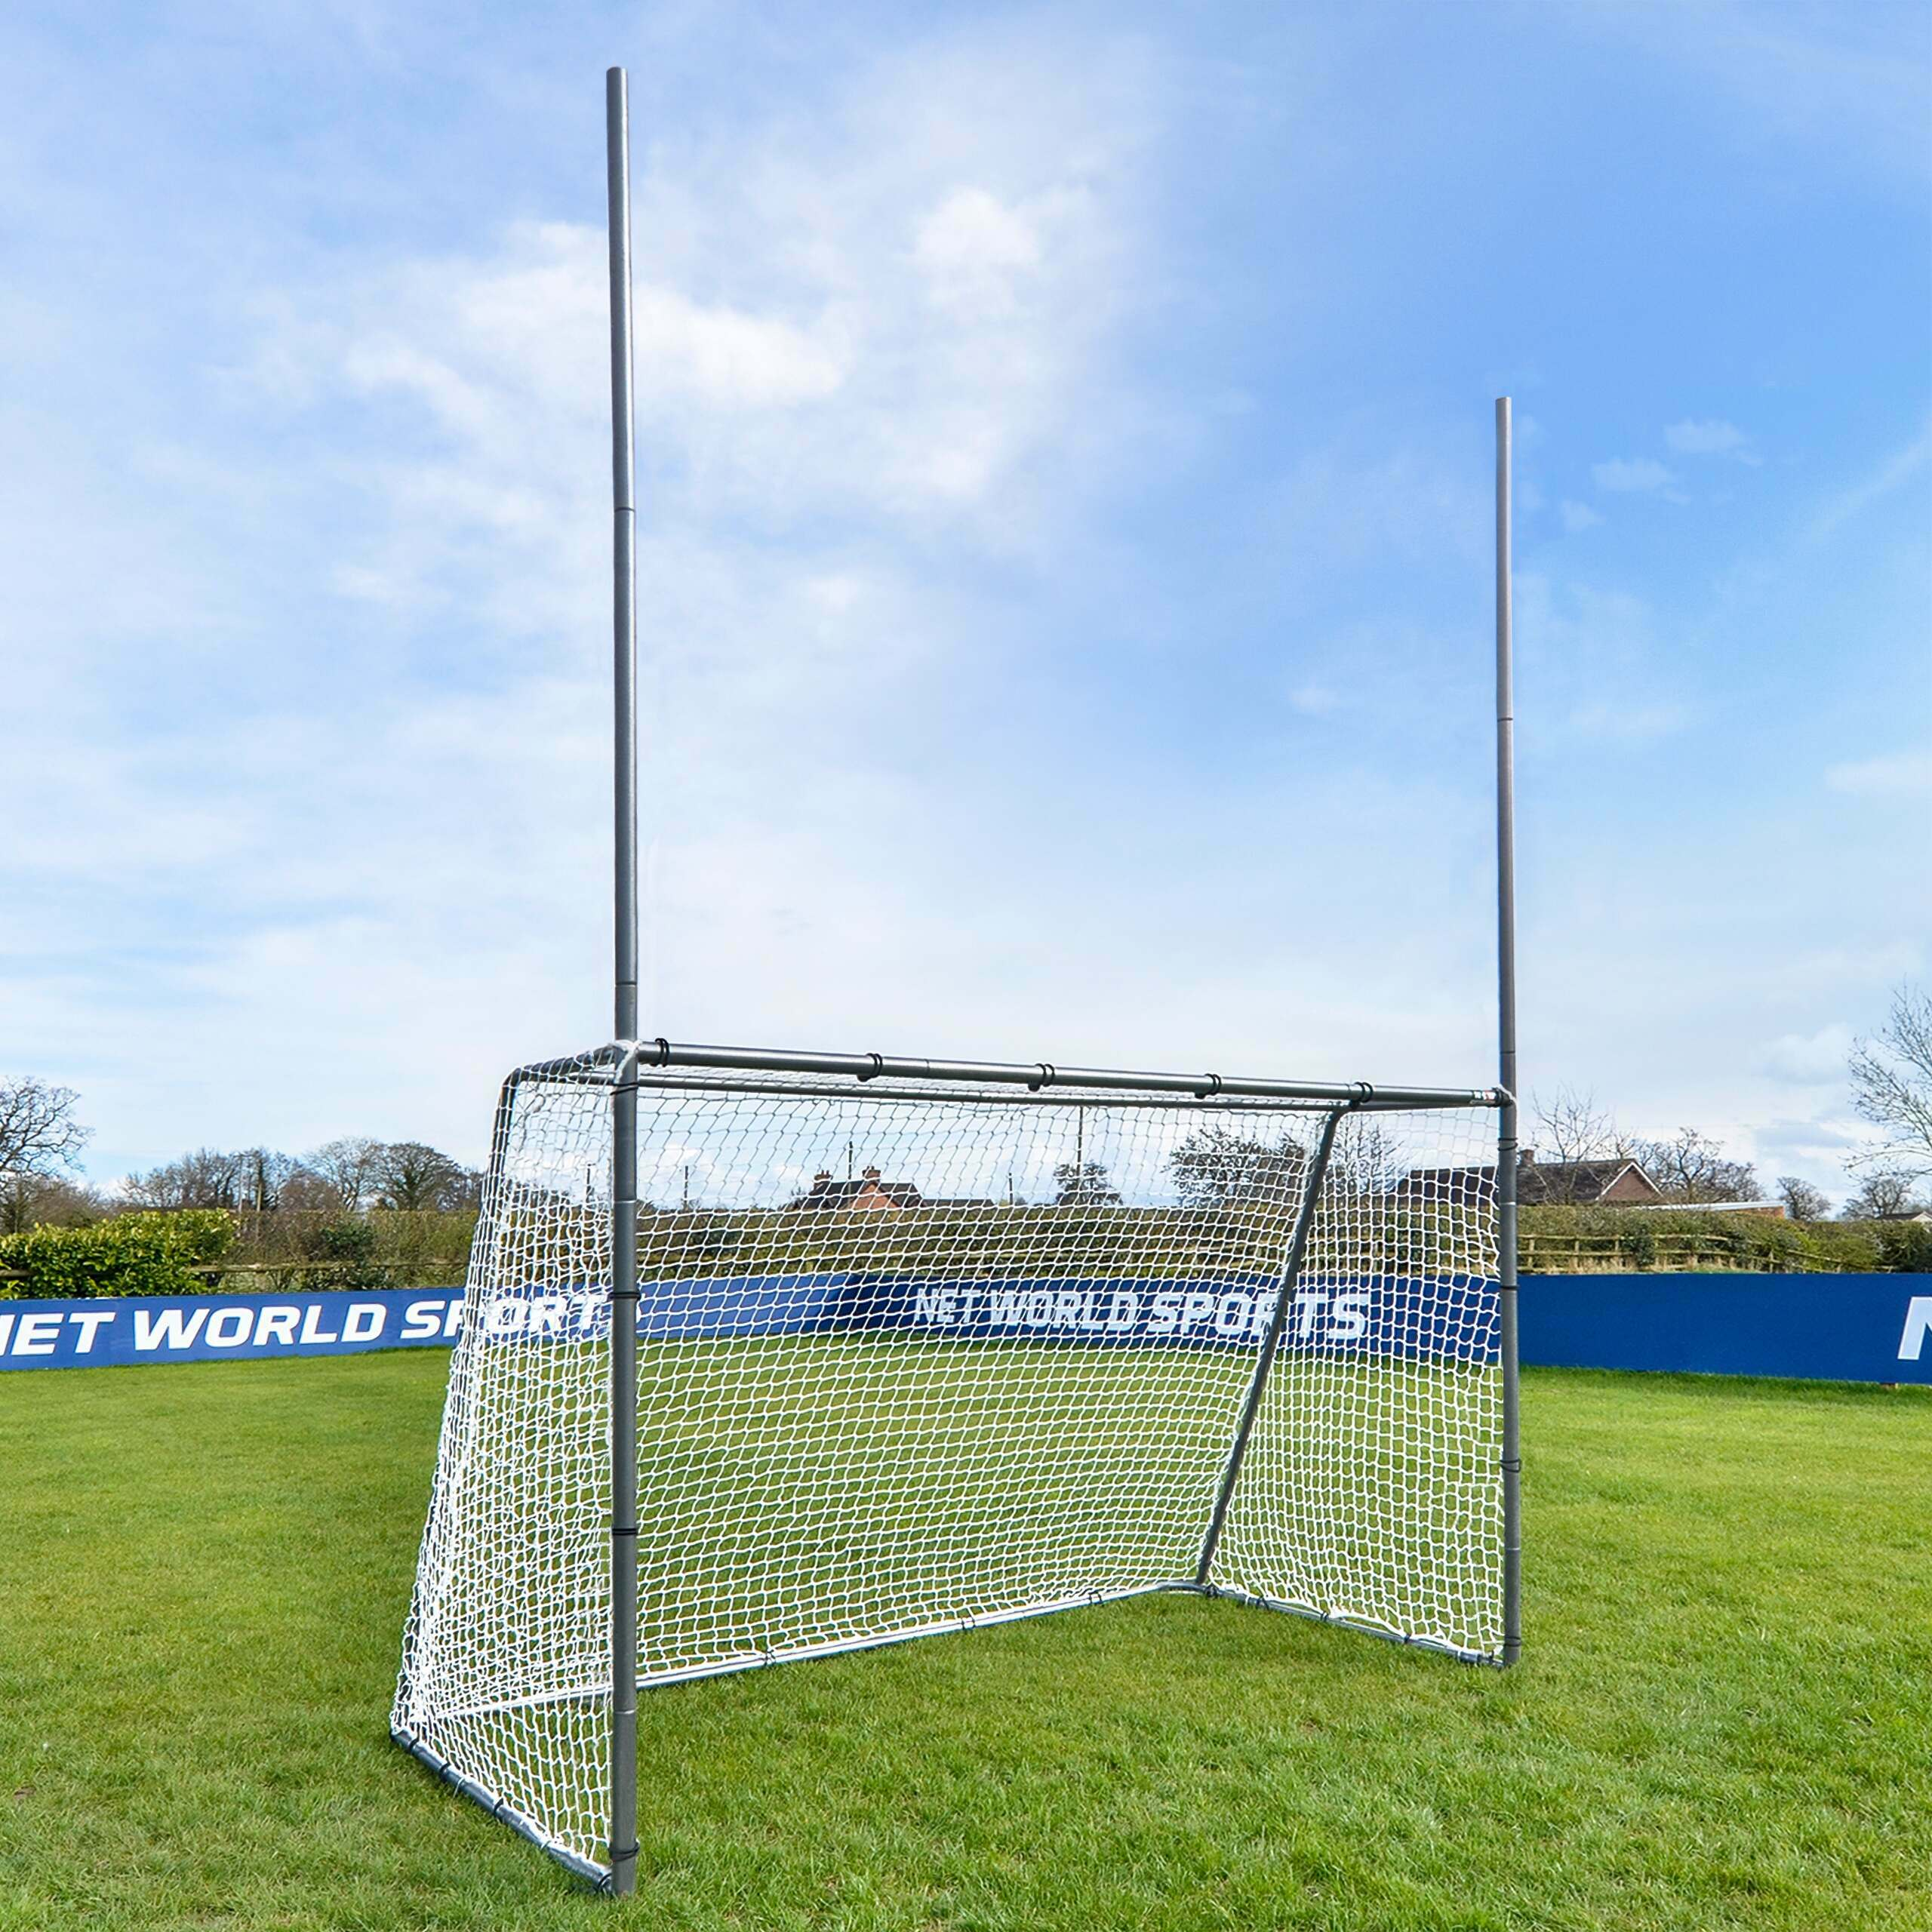 FORZA 2.4m x 1.5m Steel42 GAA Goal | Net World Sports